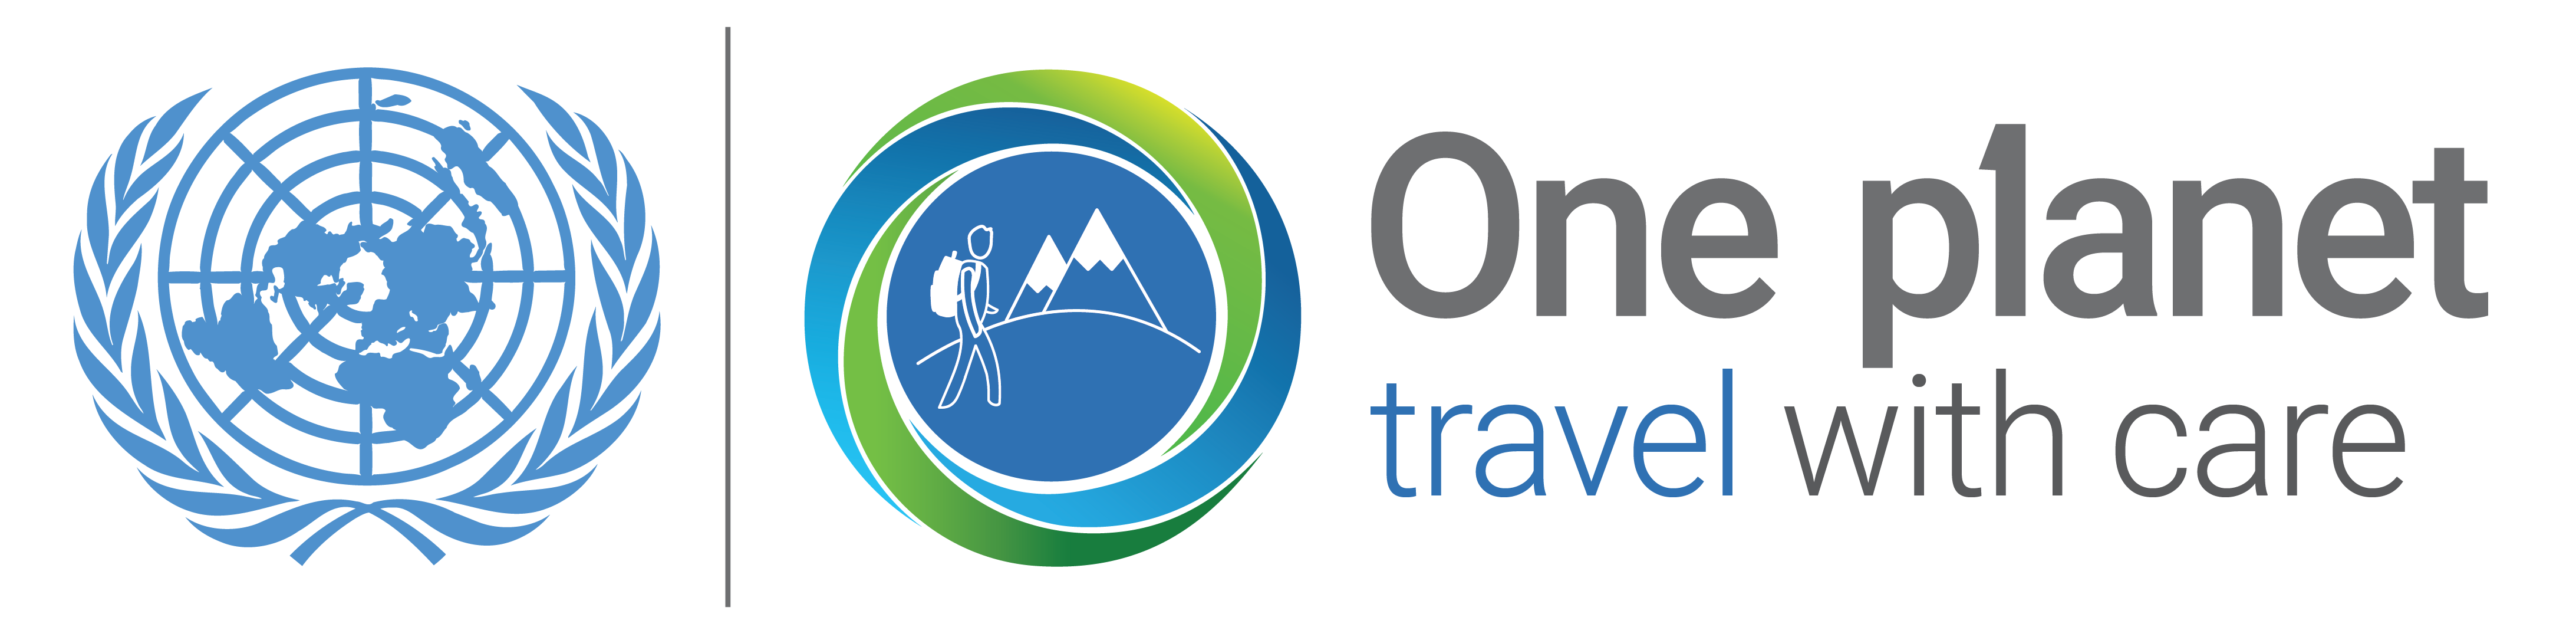 One planet network Sustainable Tourism Programme logo